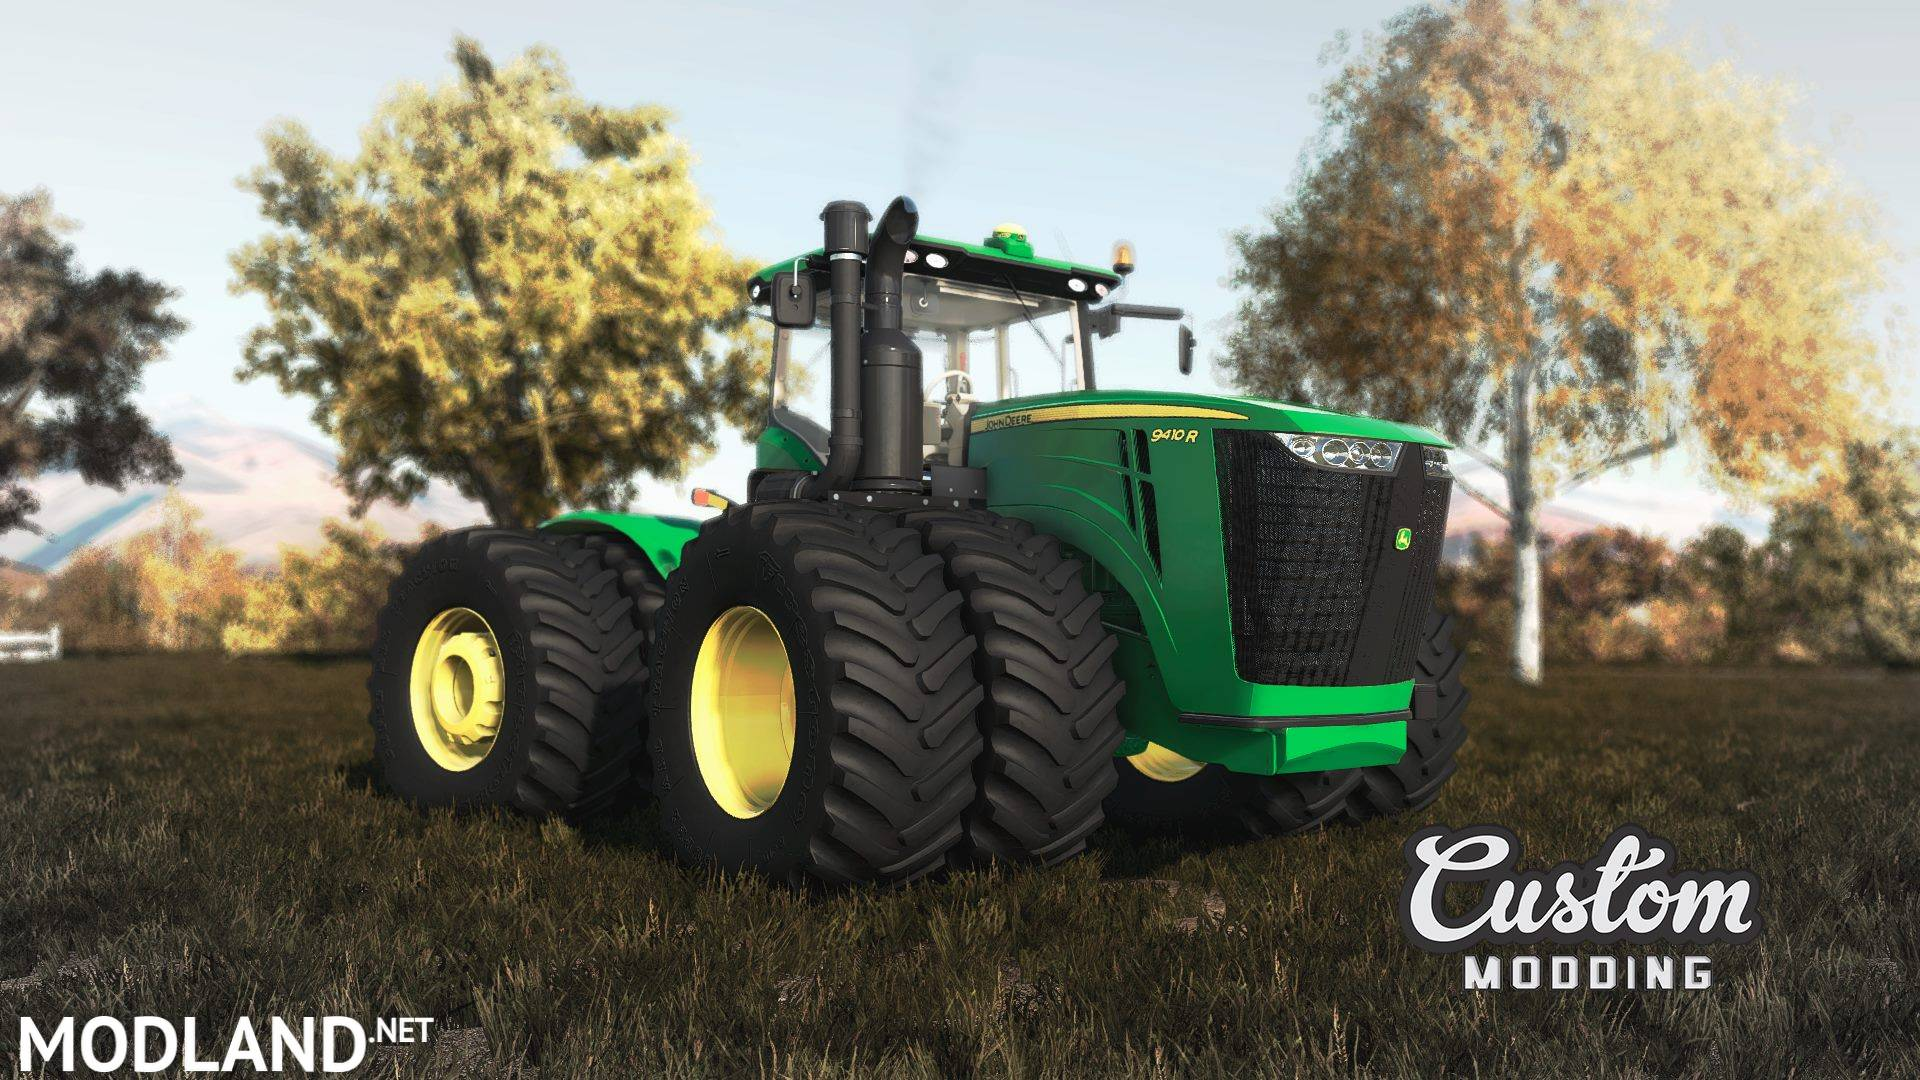 Farming simulator 2019 gps mod download dedicated Servers